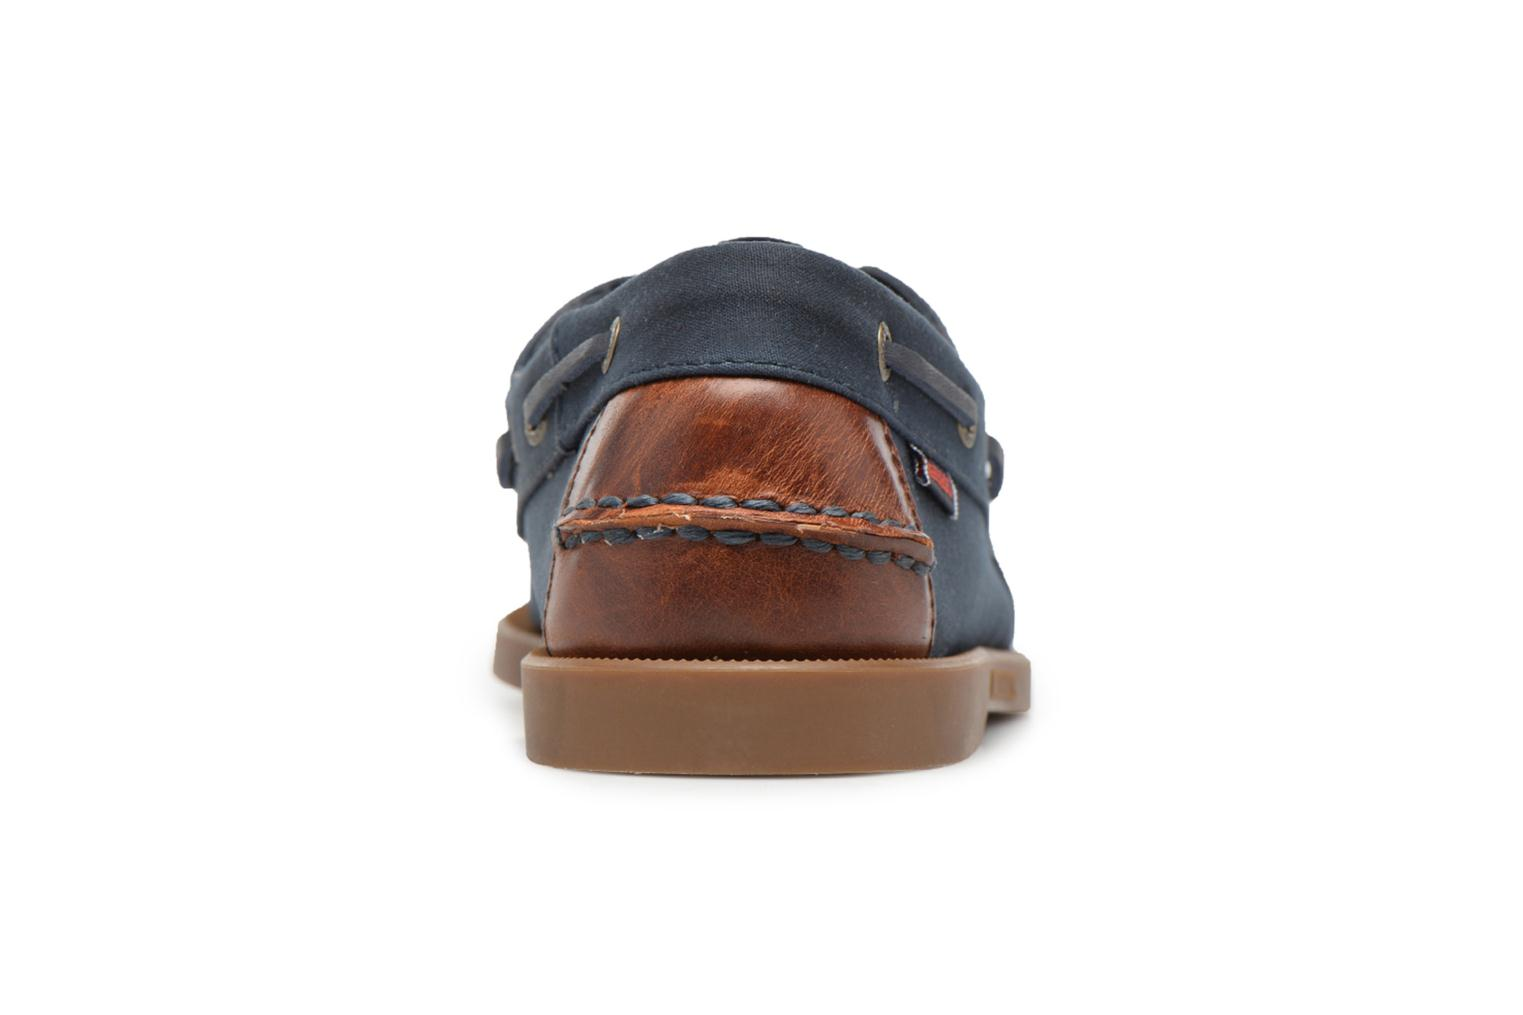 Spinnaker Navy Txtl/Brown Leather